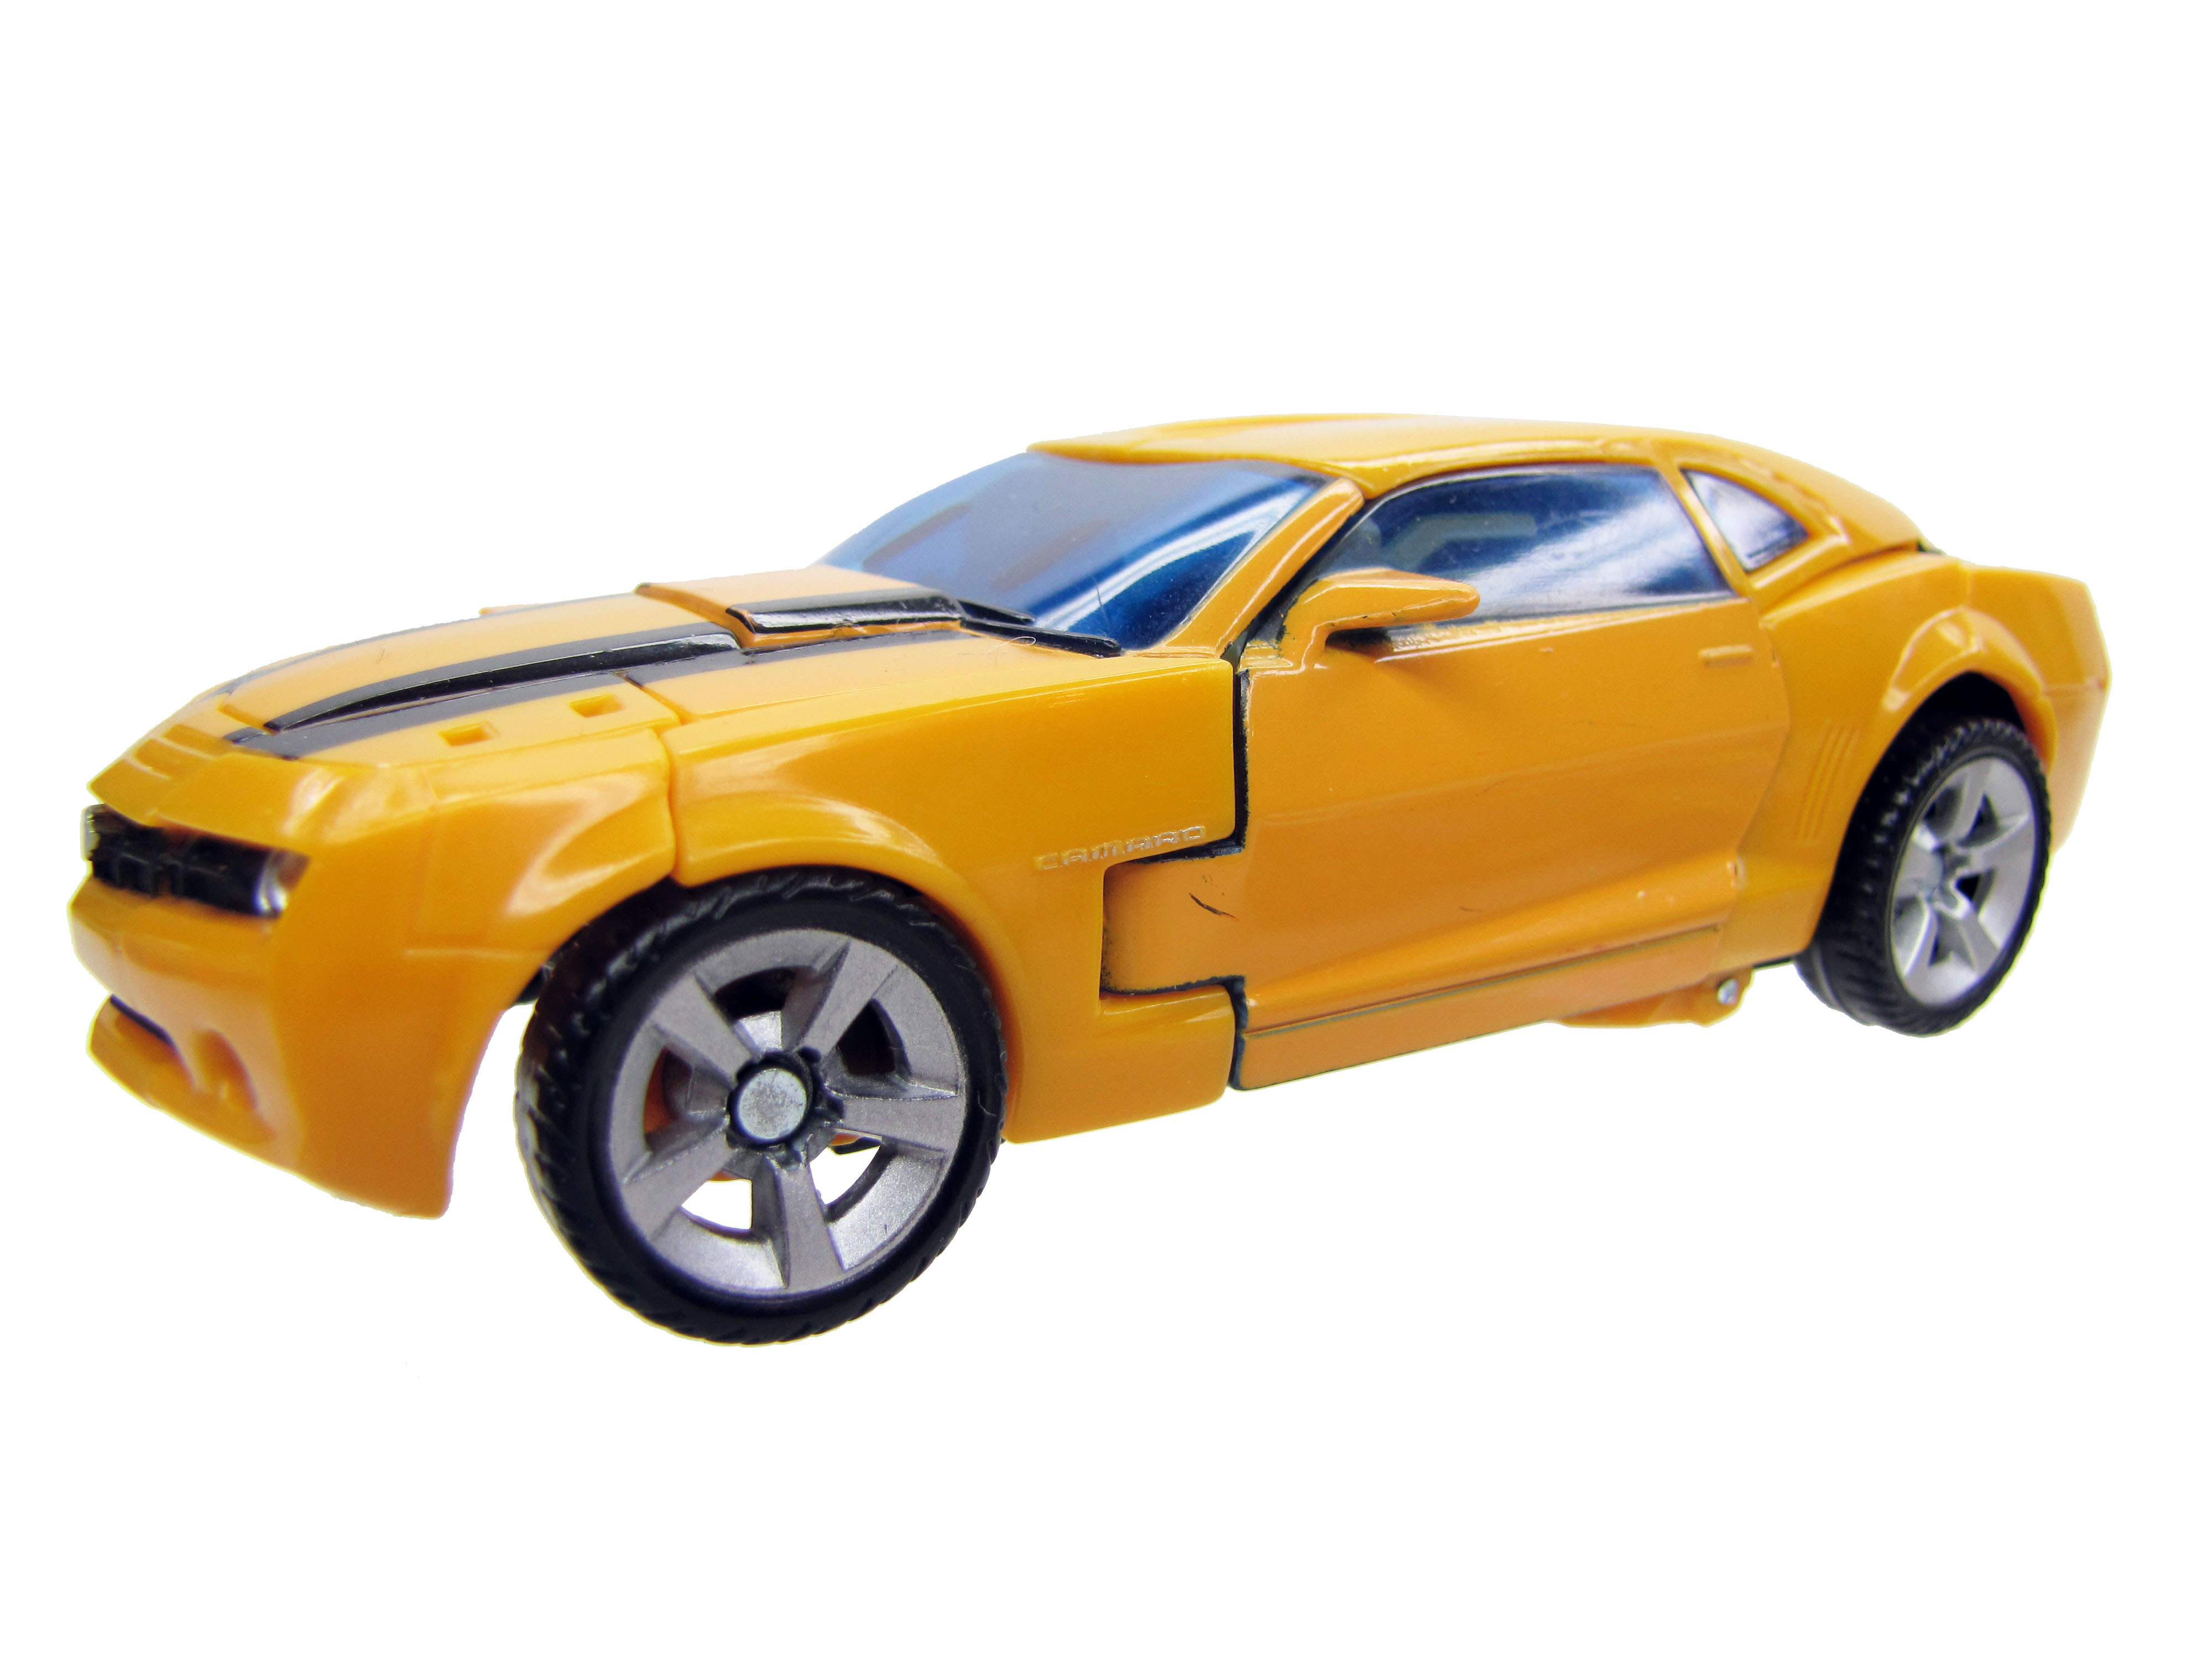 2007 Transformers Movie Camaro Concept Bumblebee Complete